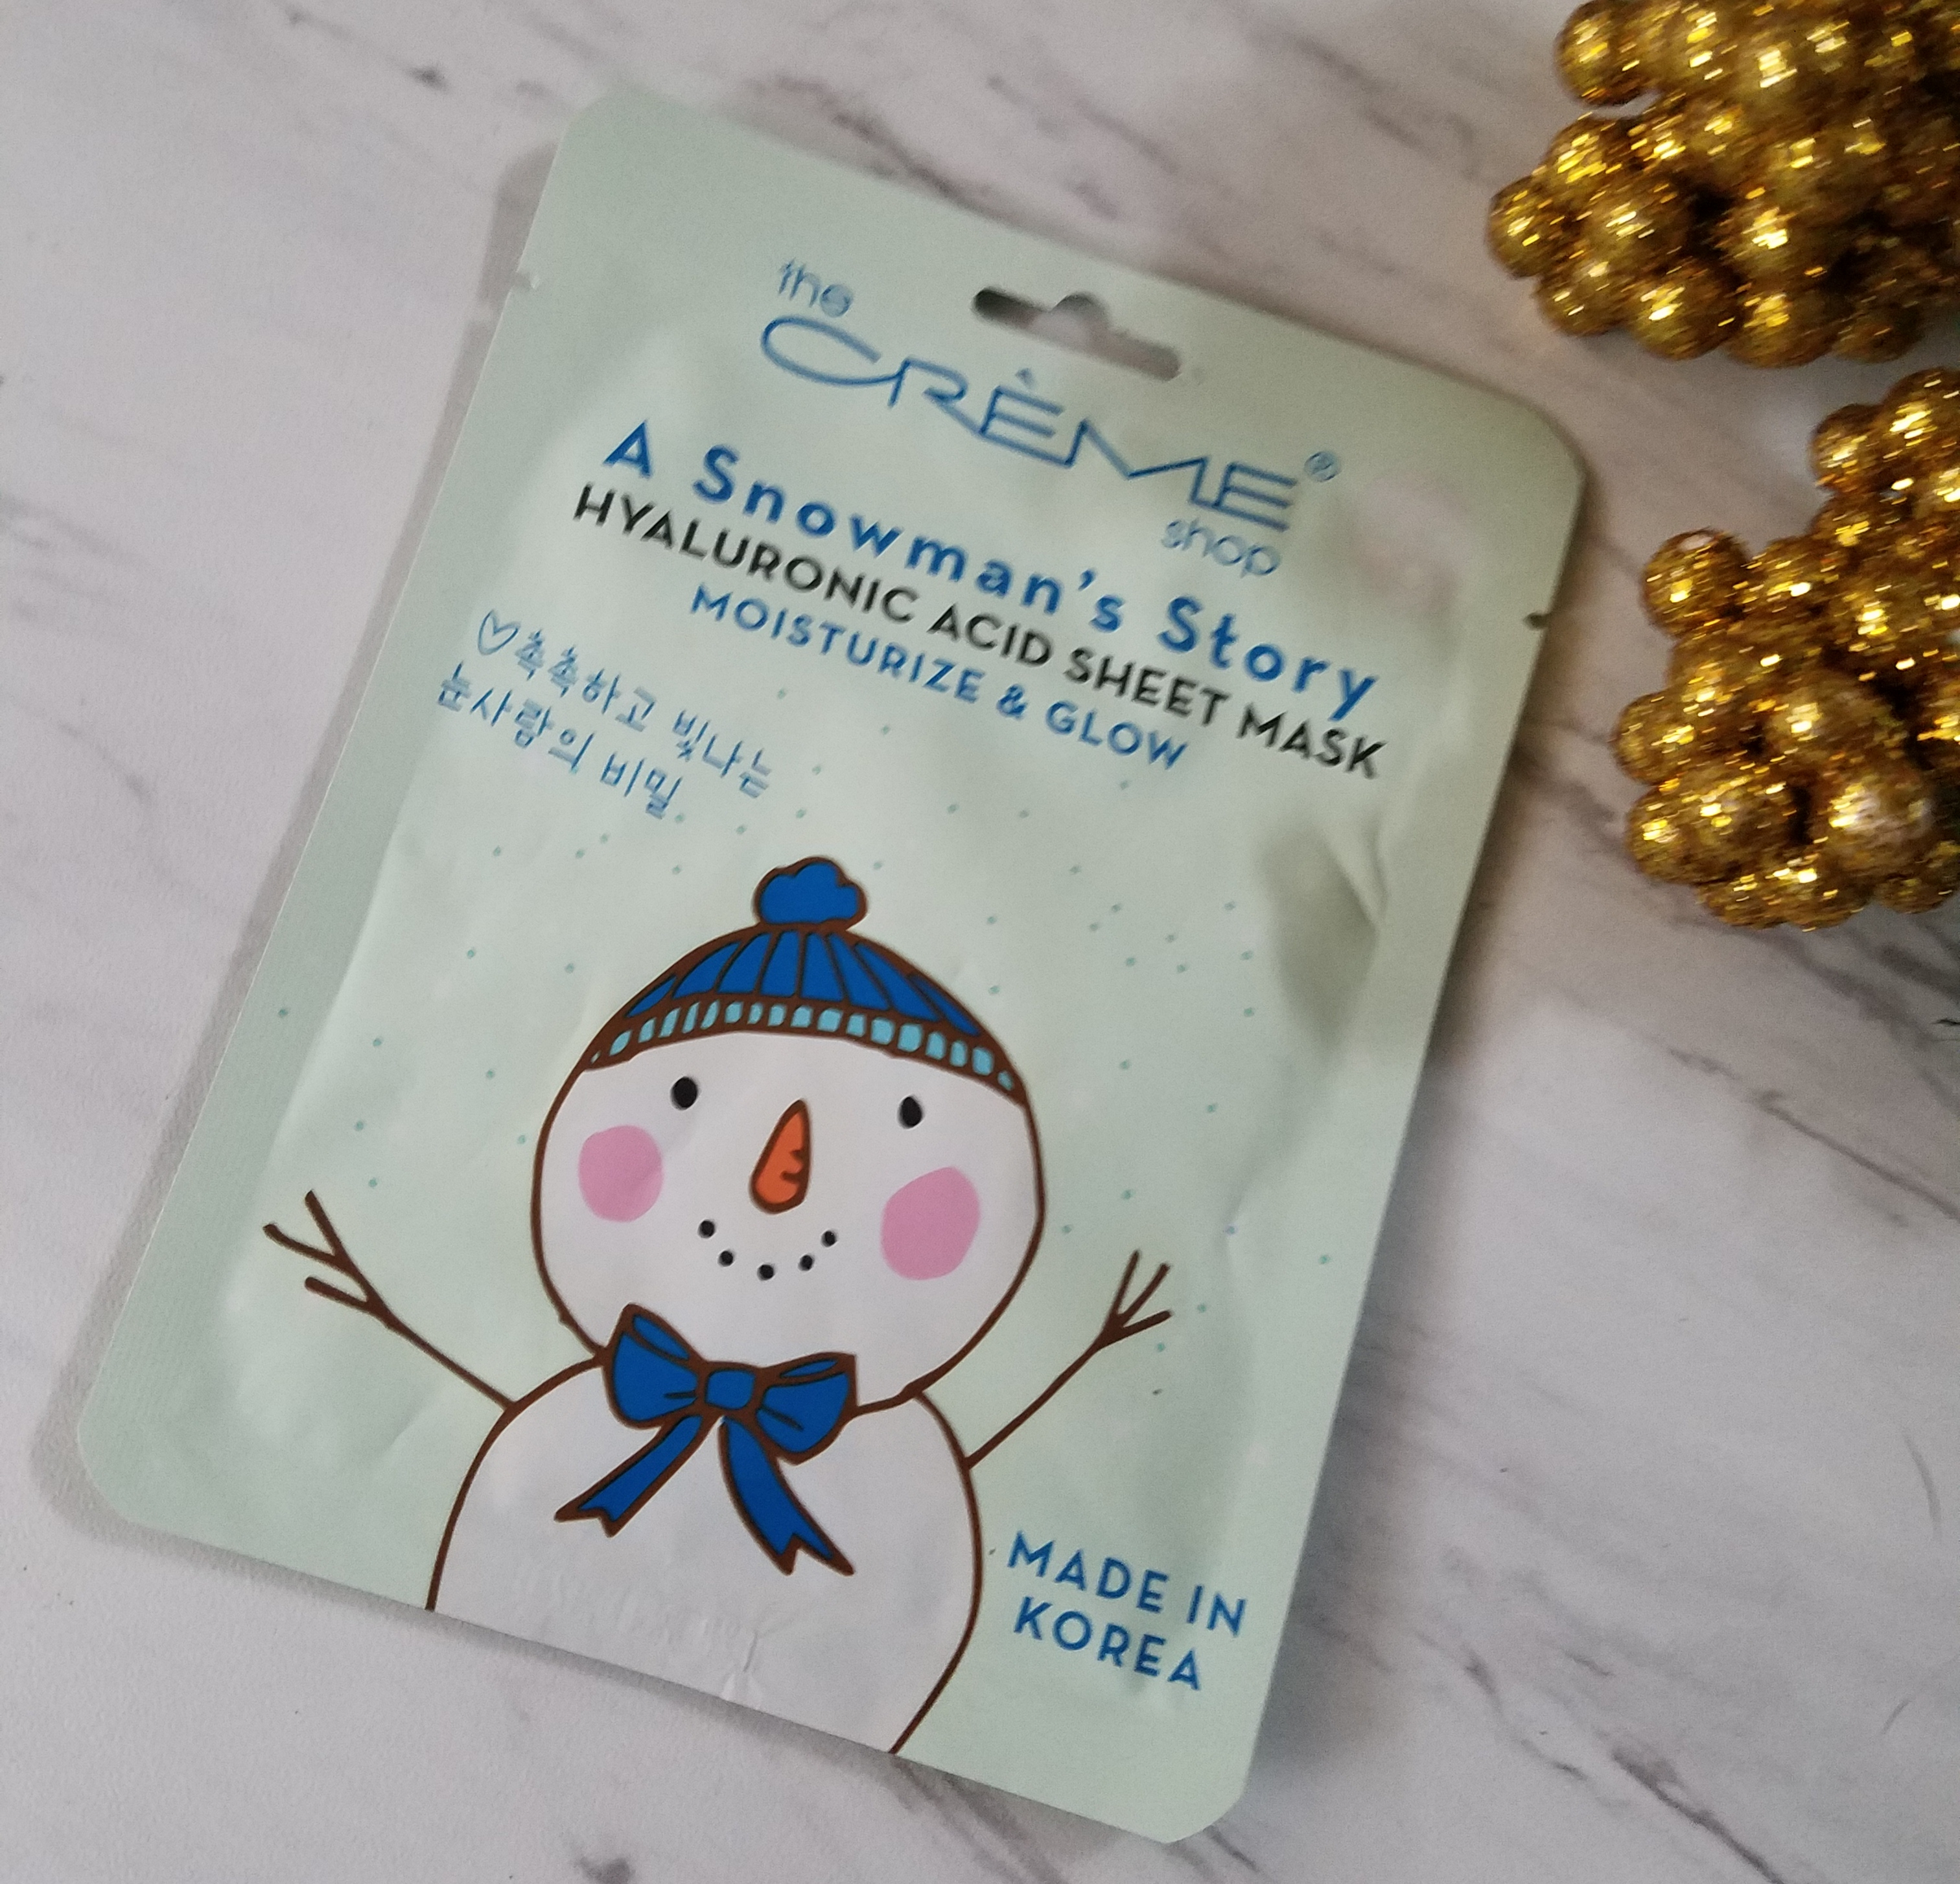 The Creme Shop A Snowman's Story Hyaluronic Acid Sheet Mask